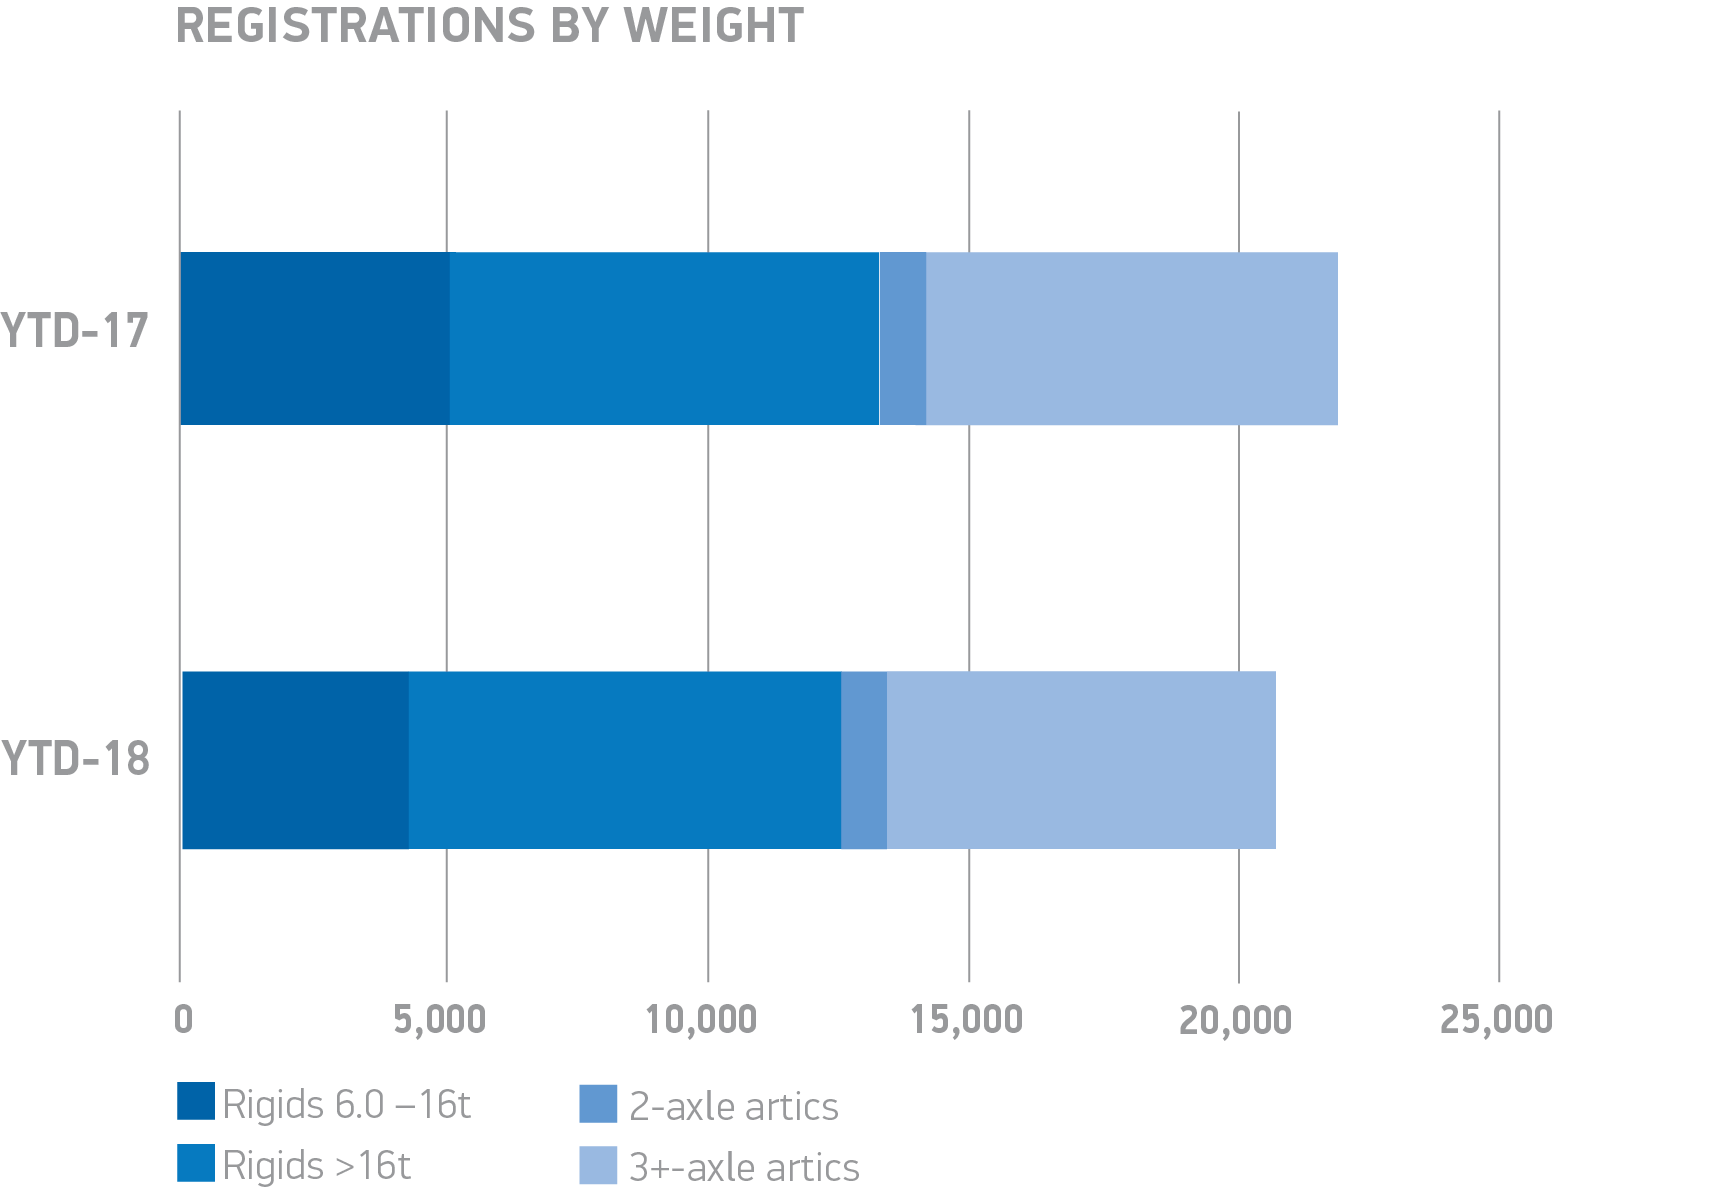 Q2 YTD BY WEIGHT chart